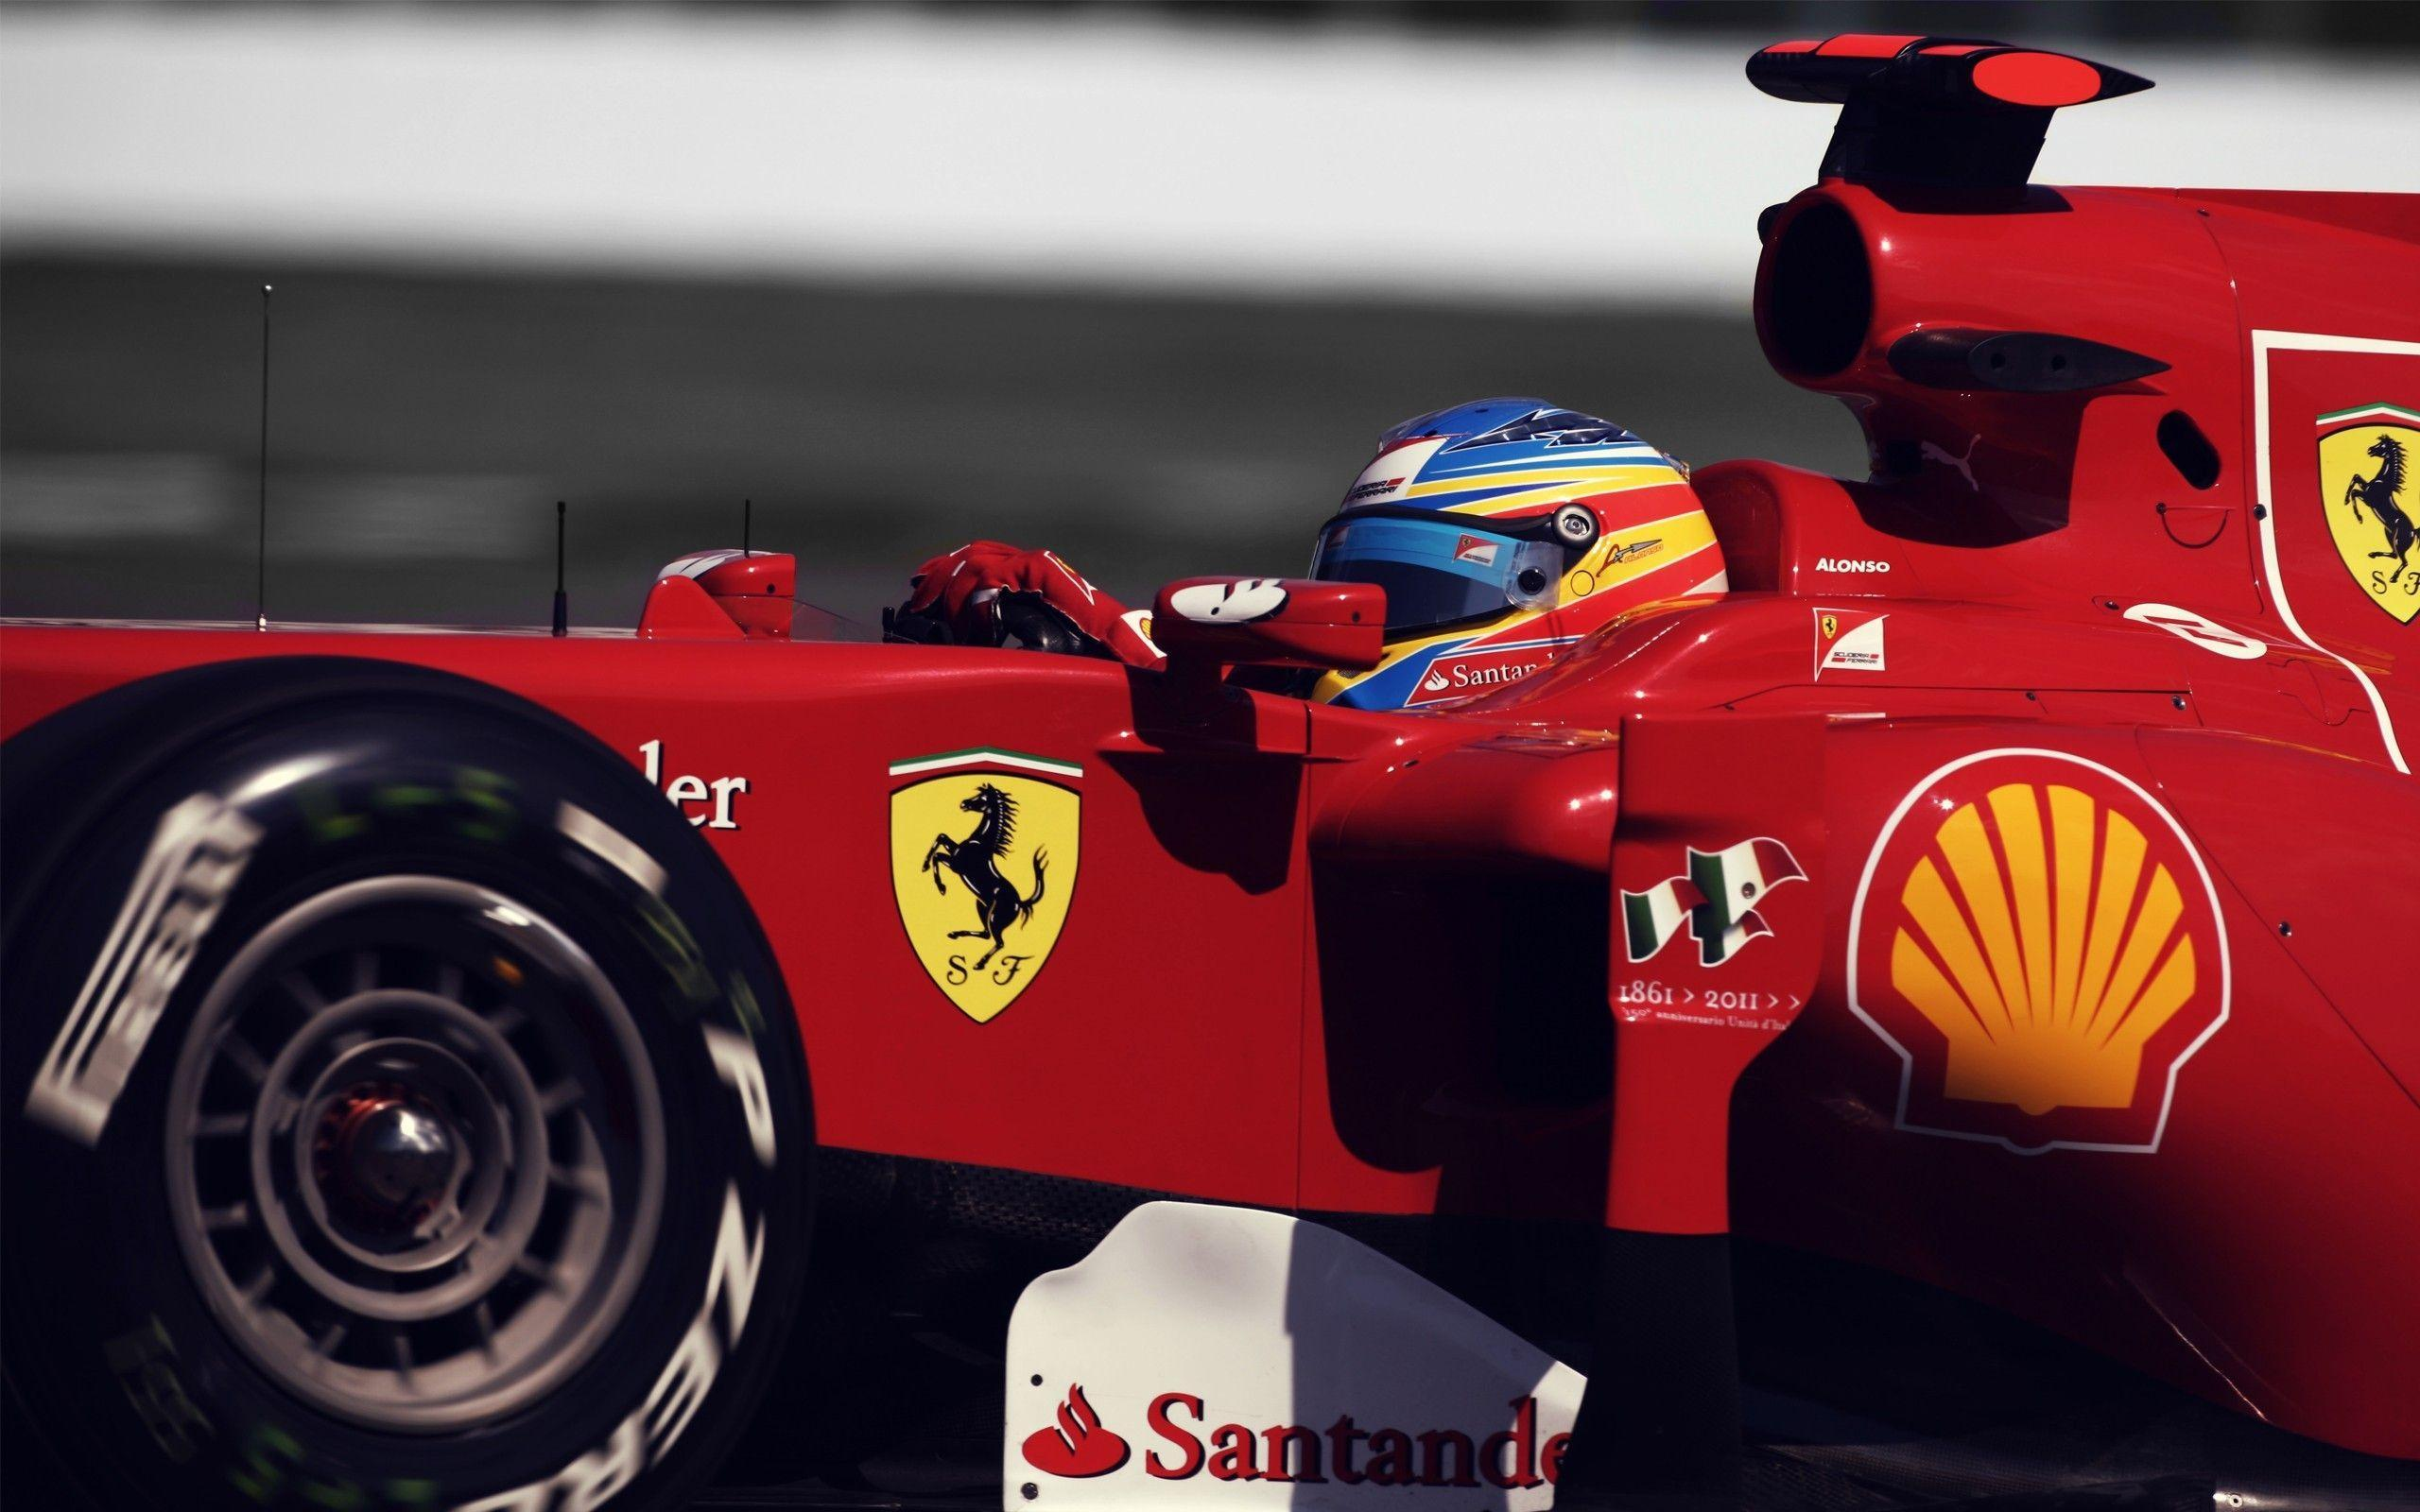 Fernando Alonso Driving Ferrari Scuderia at Formula One widescreen